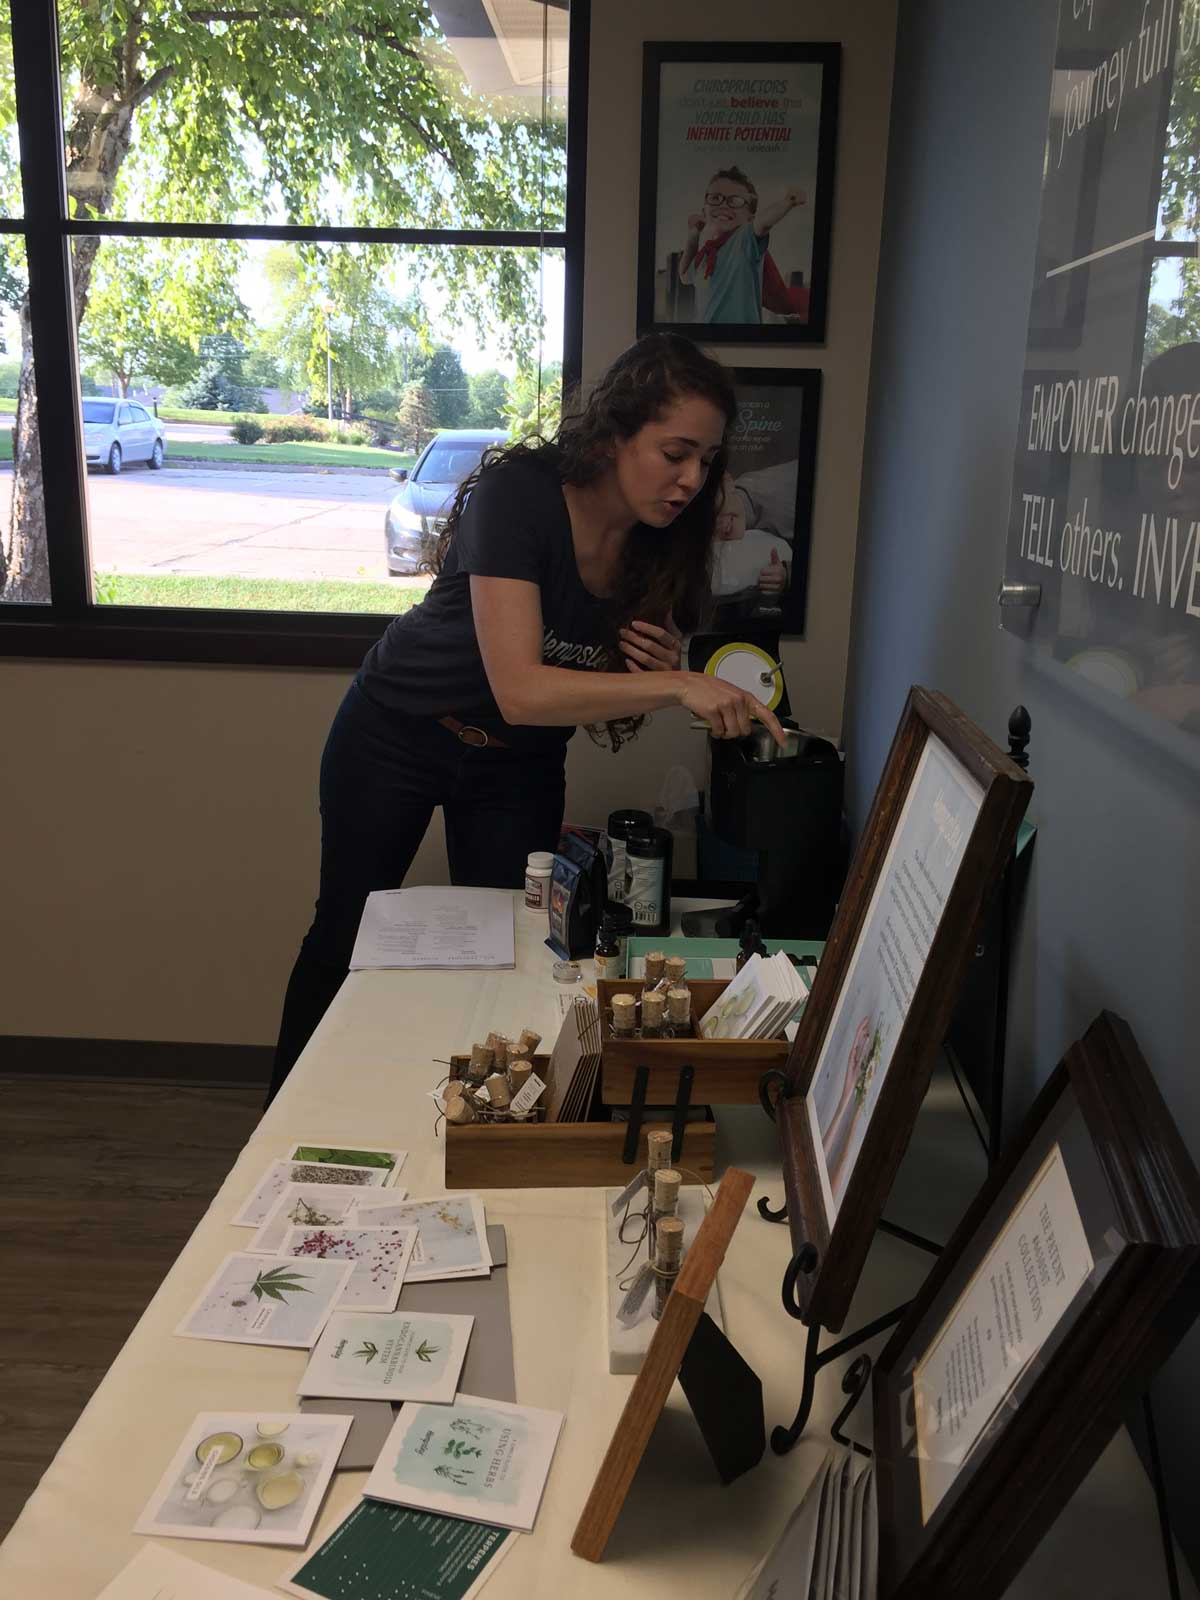 Kristen demonstrating how she made the rosemary-infused jojoba oil in the  LEVO oil infusion machine